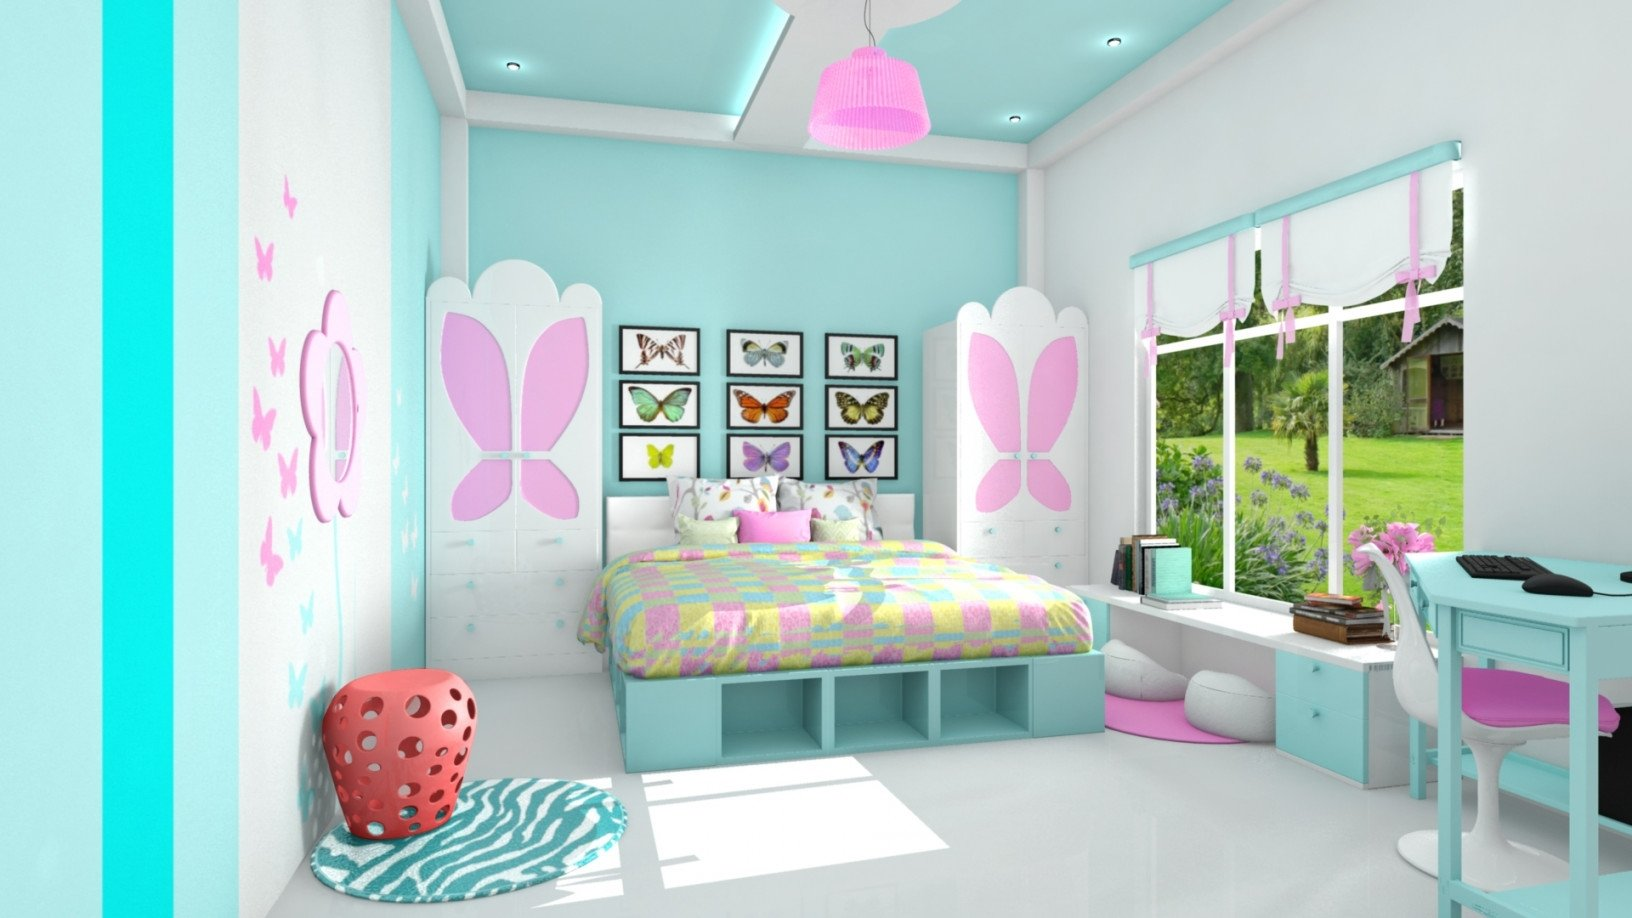 10 Pretty 10 Year Old Bedroom Ideas 10 year old bedroom ideas photos and video wylielauderhouse 2020